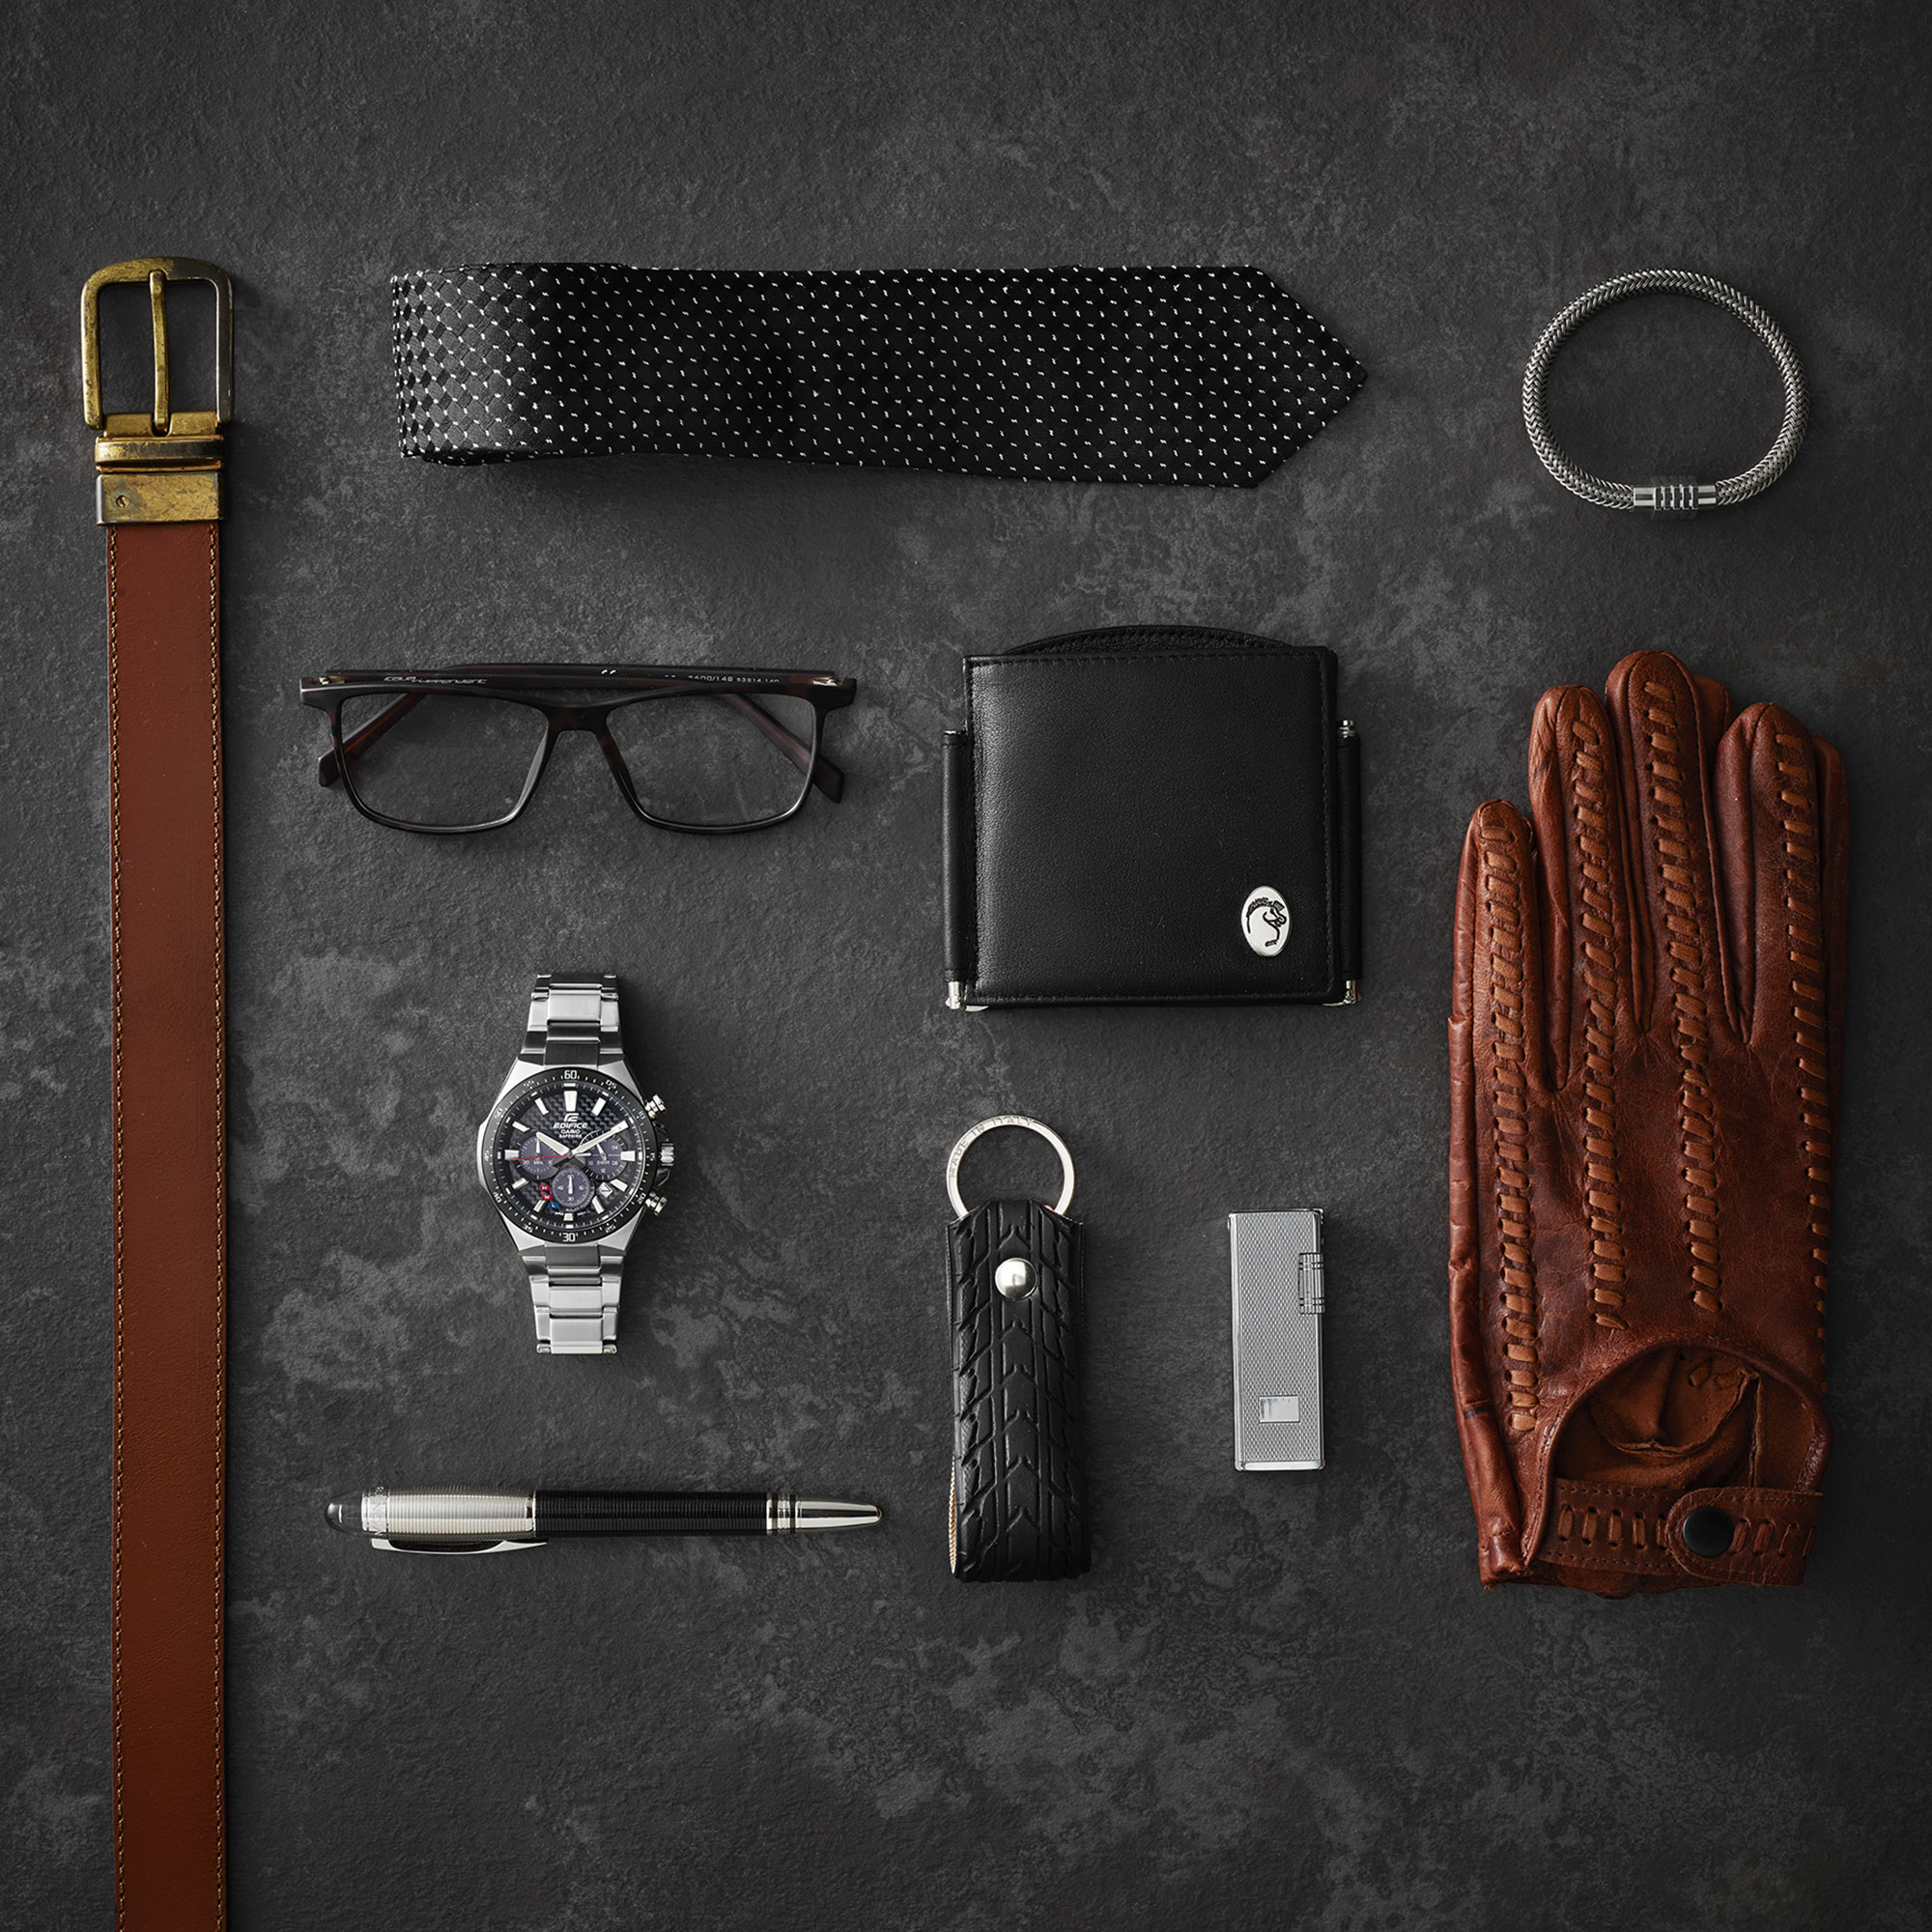 Man Tie Belt Glasses Pen Glove Still Life Shot for Casio by Fotografando